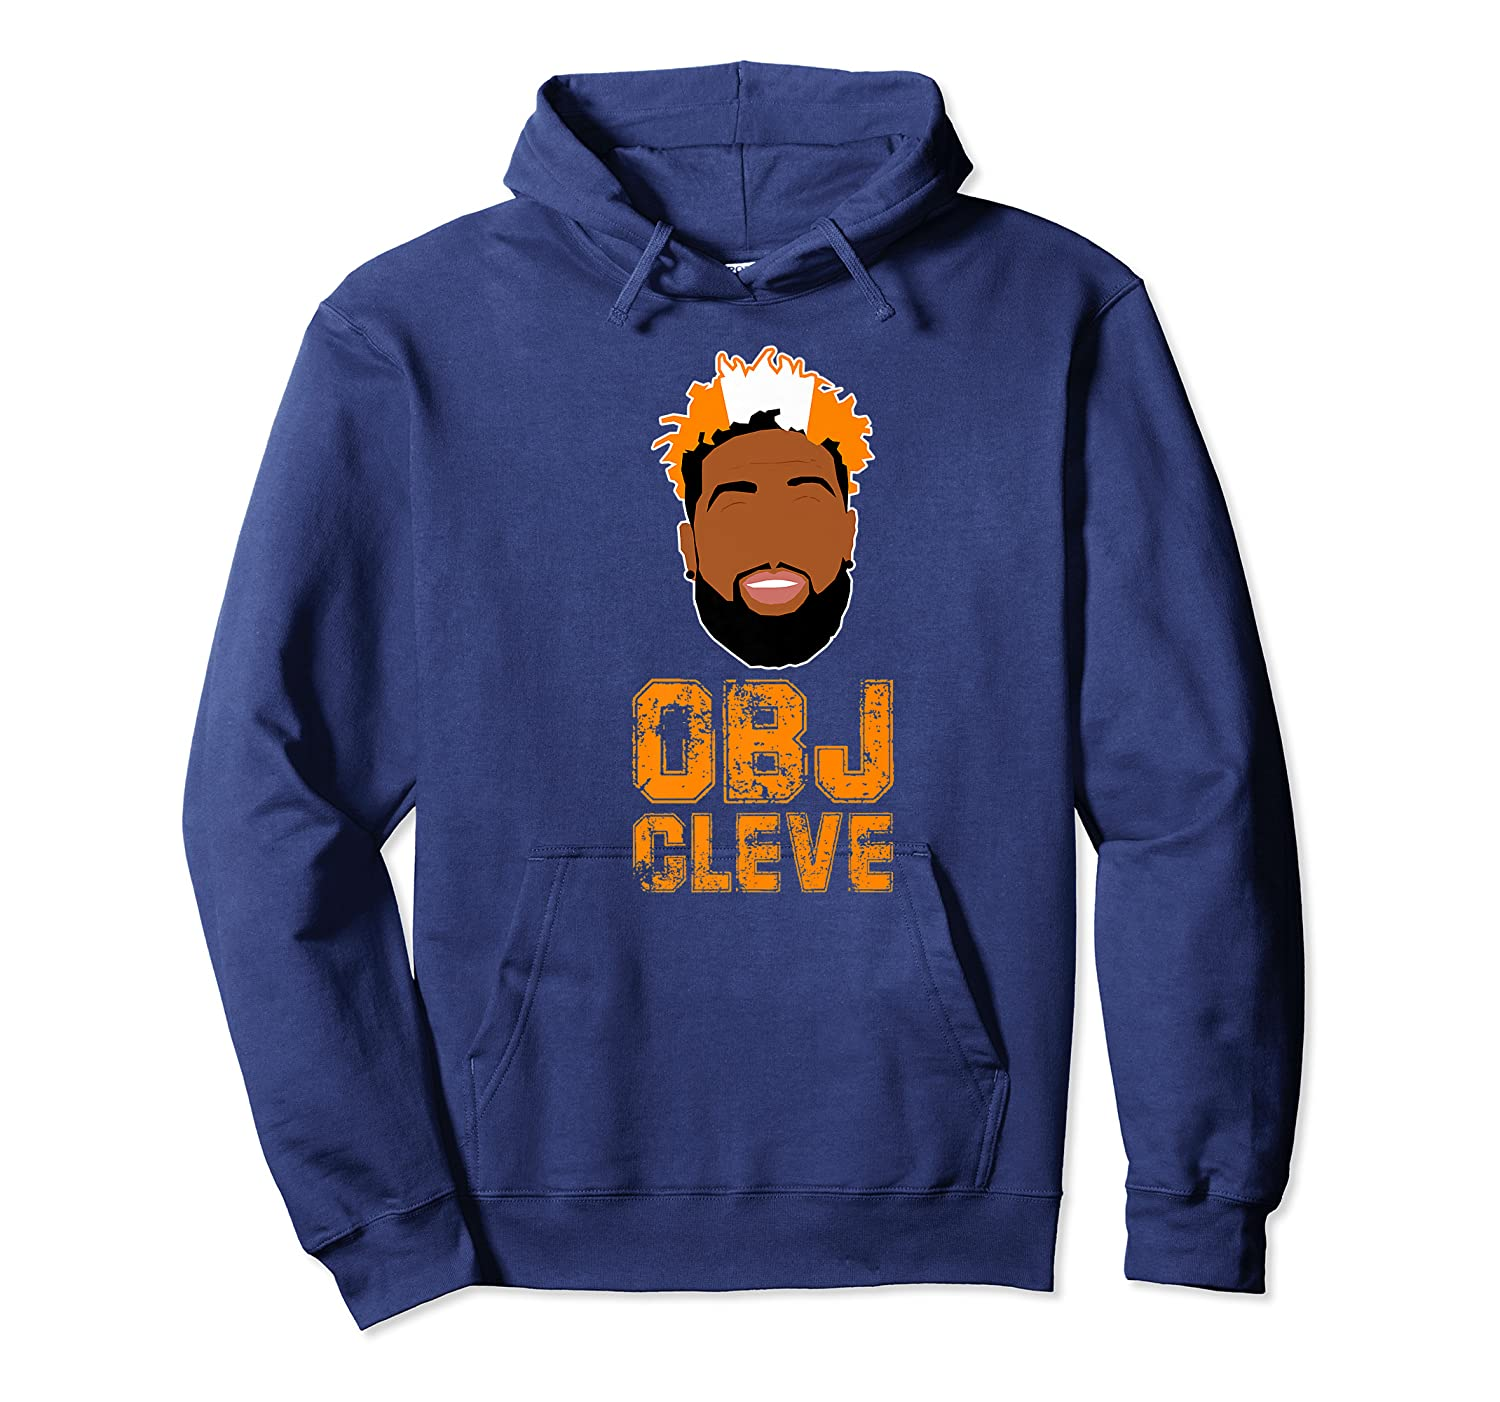 Football Obj Cleveland Shirts Unisex Pullover Hoodie